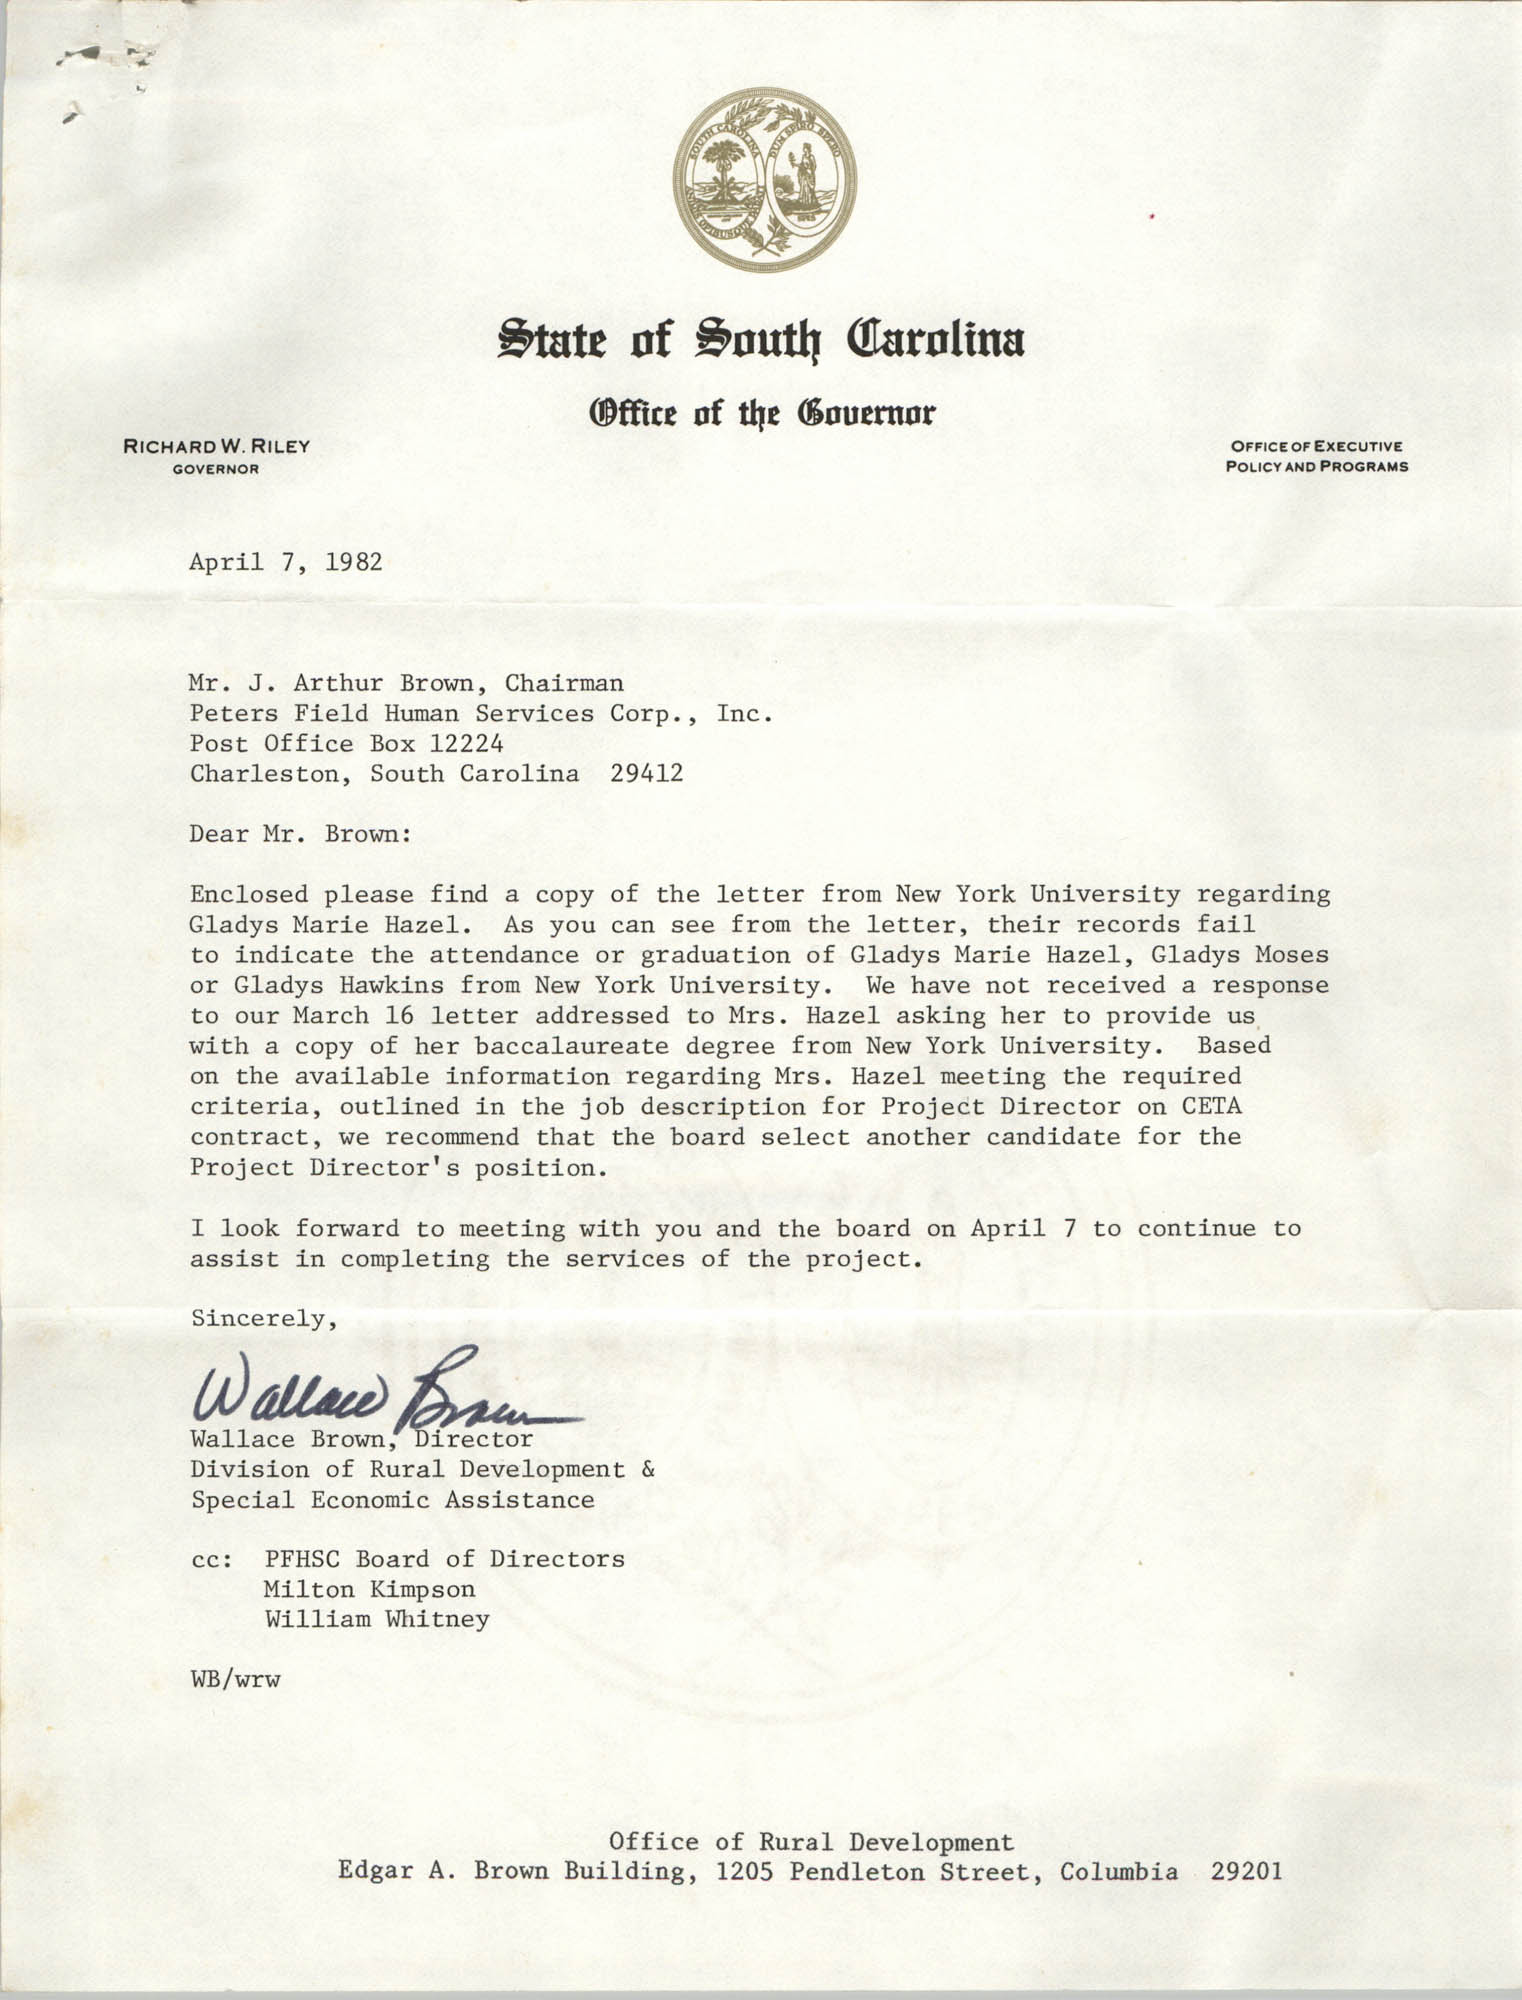 Letter from Wallace Brown to J. Arthur Brown, April 7, 1982